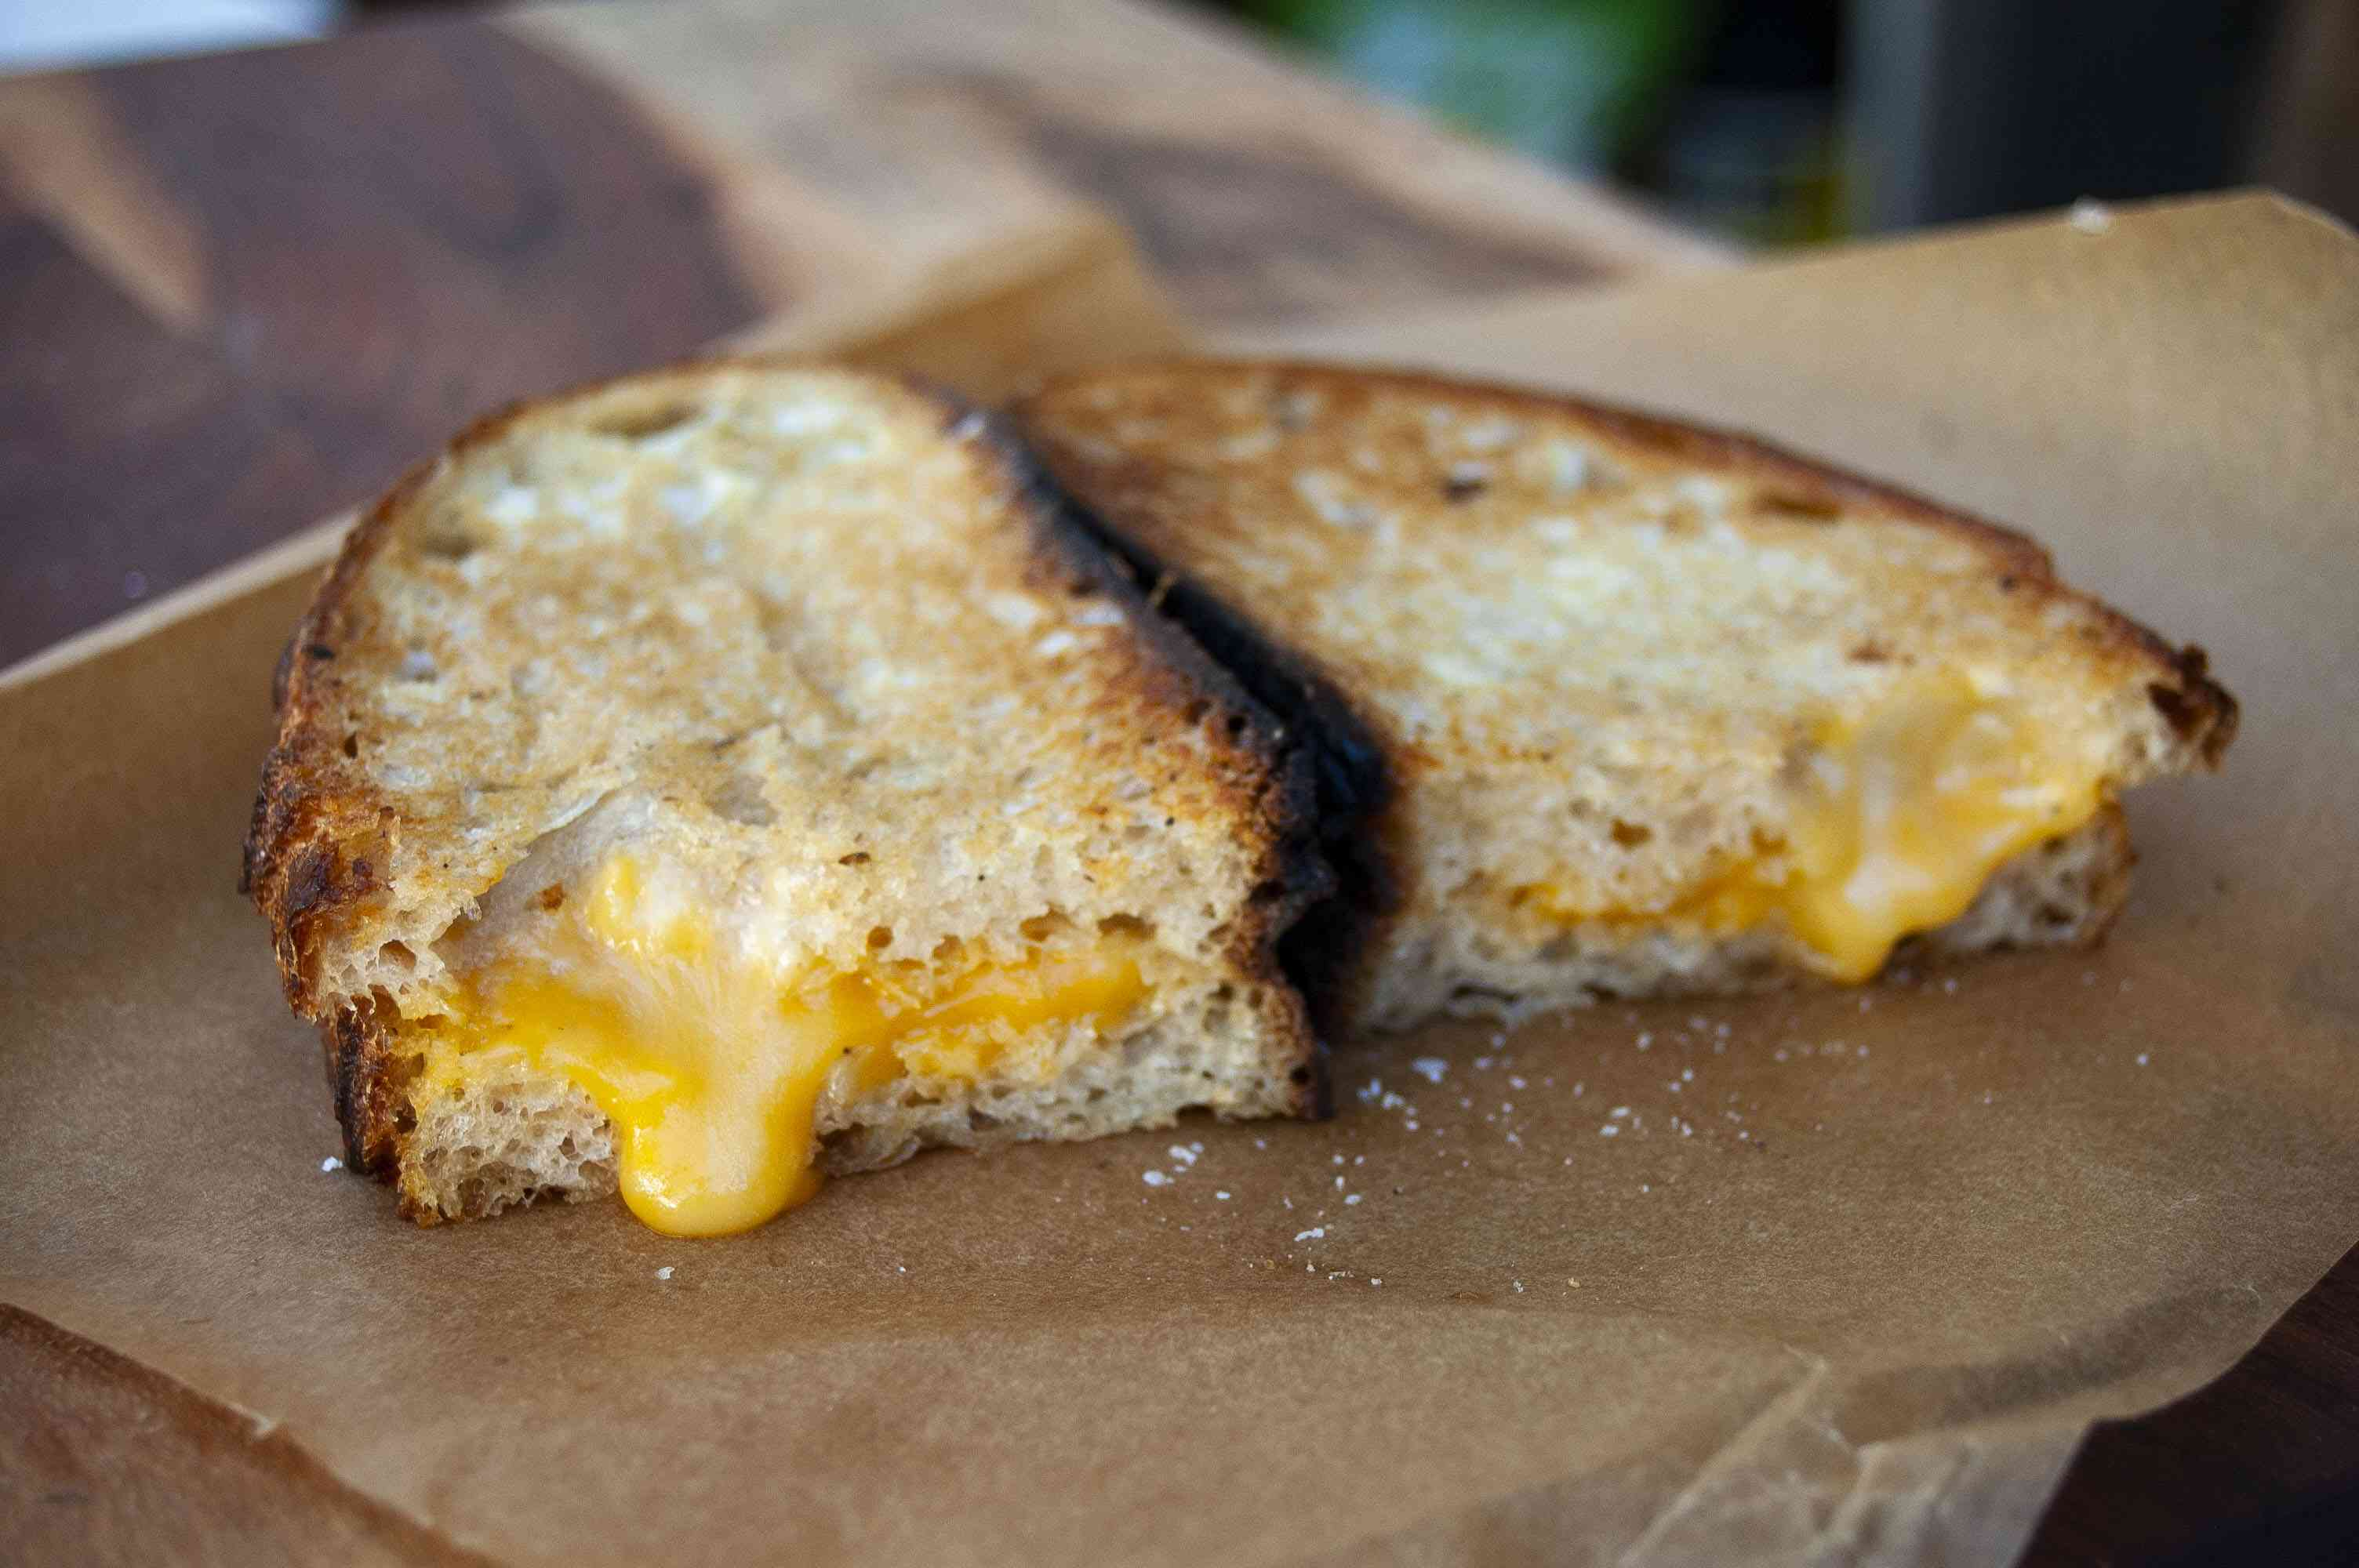 Grilled cheese sandwich made with mayonnaise instead of butter